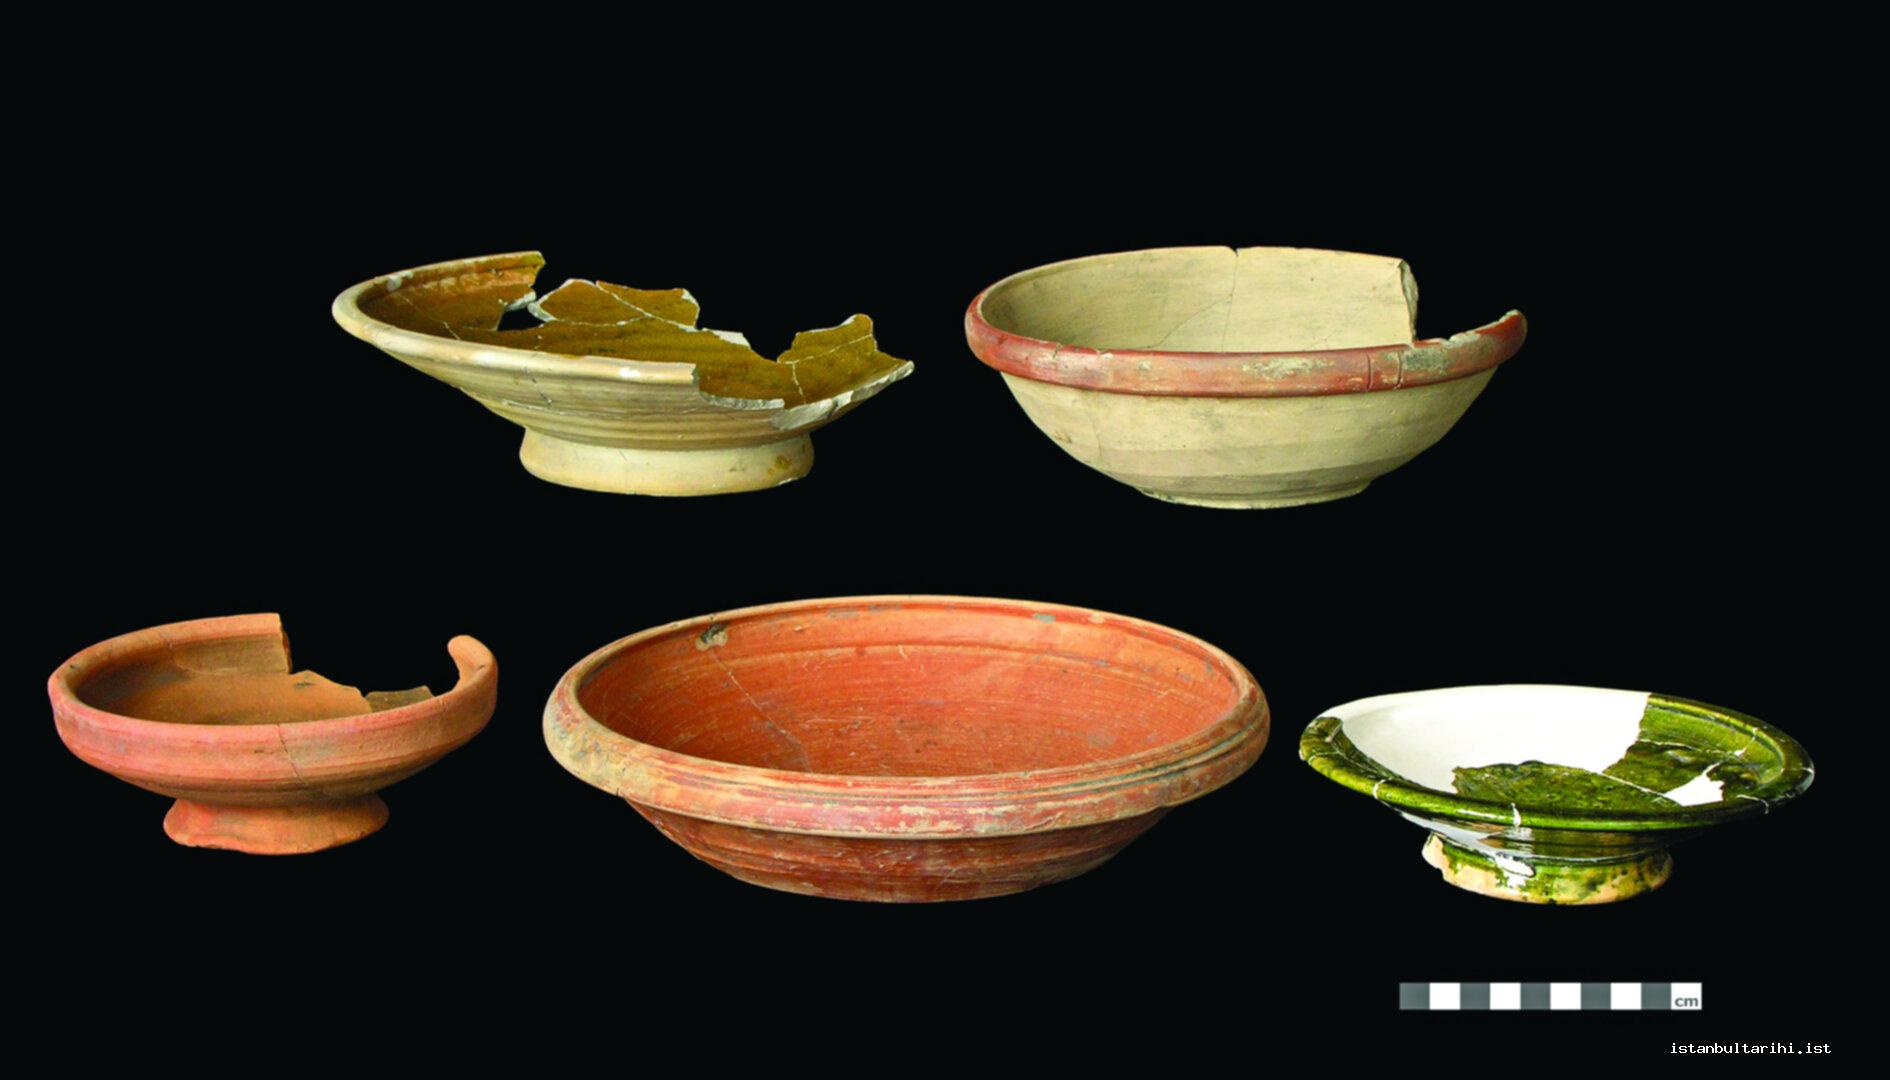 12- Baked earthen kitchen bowls